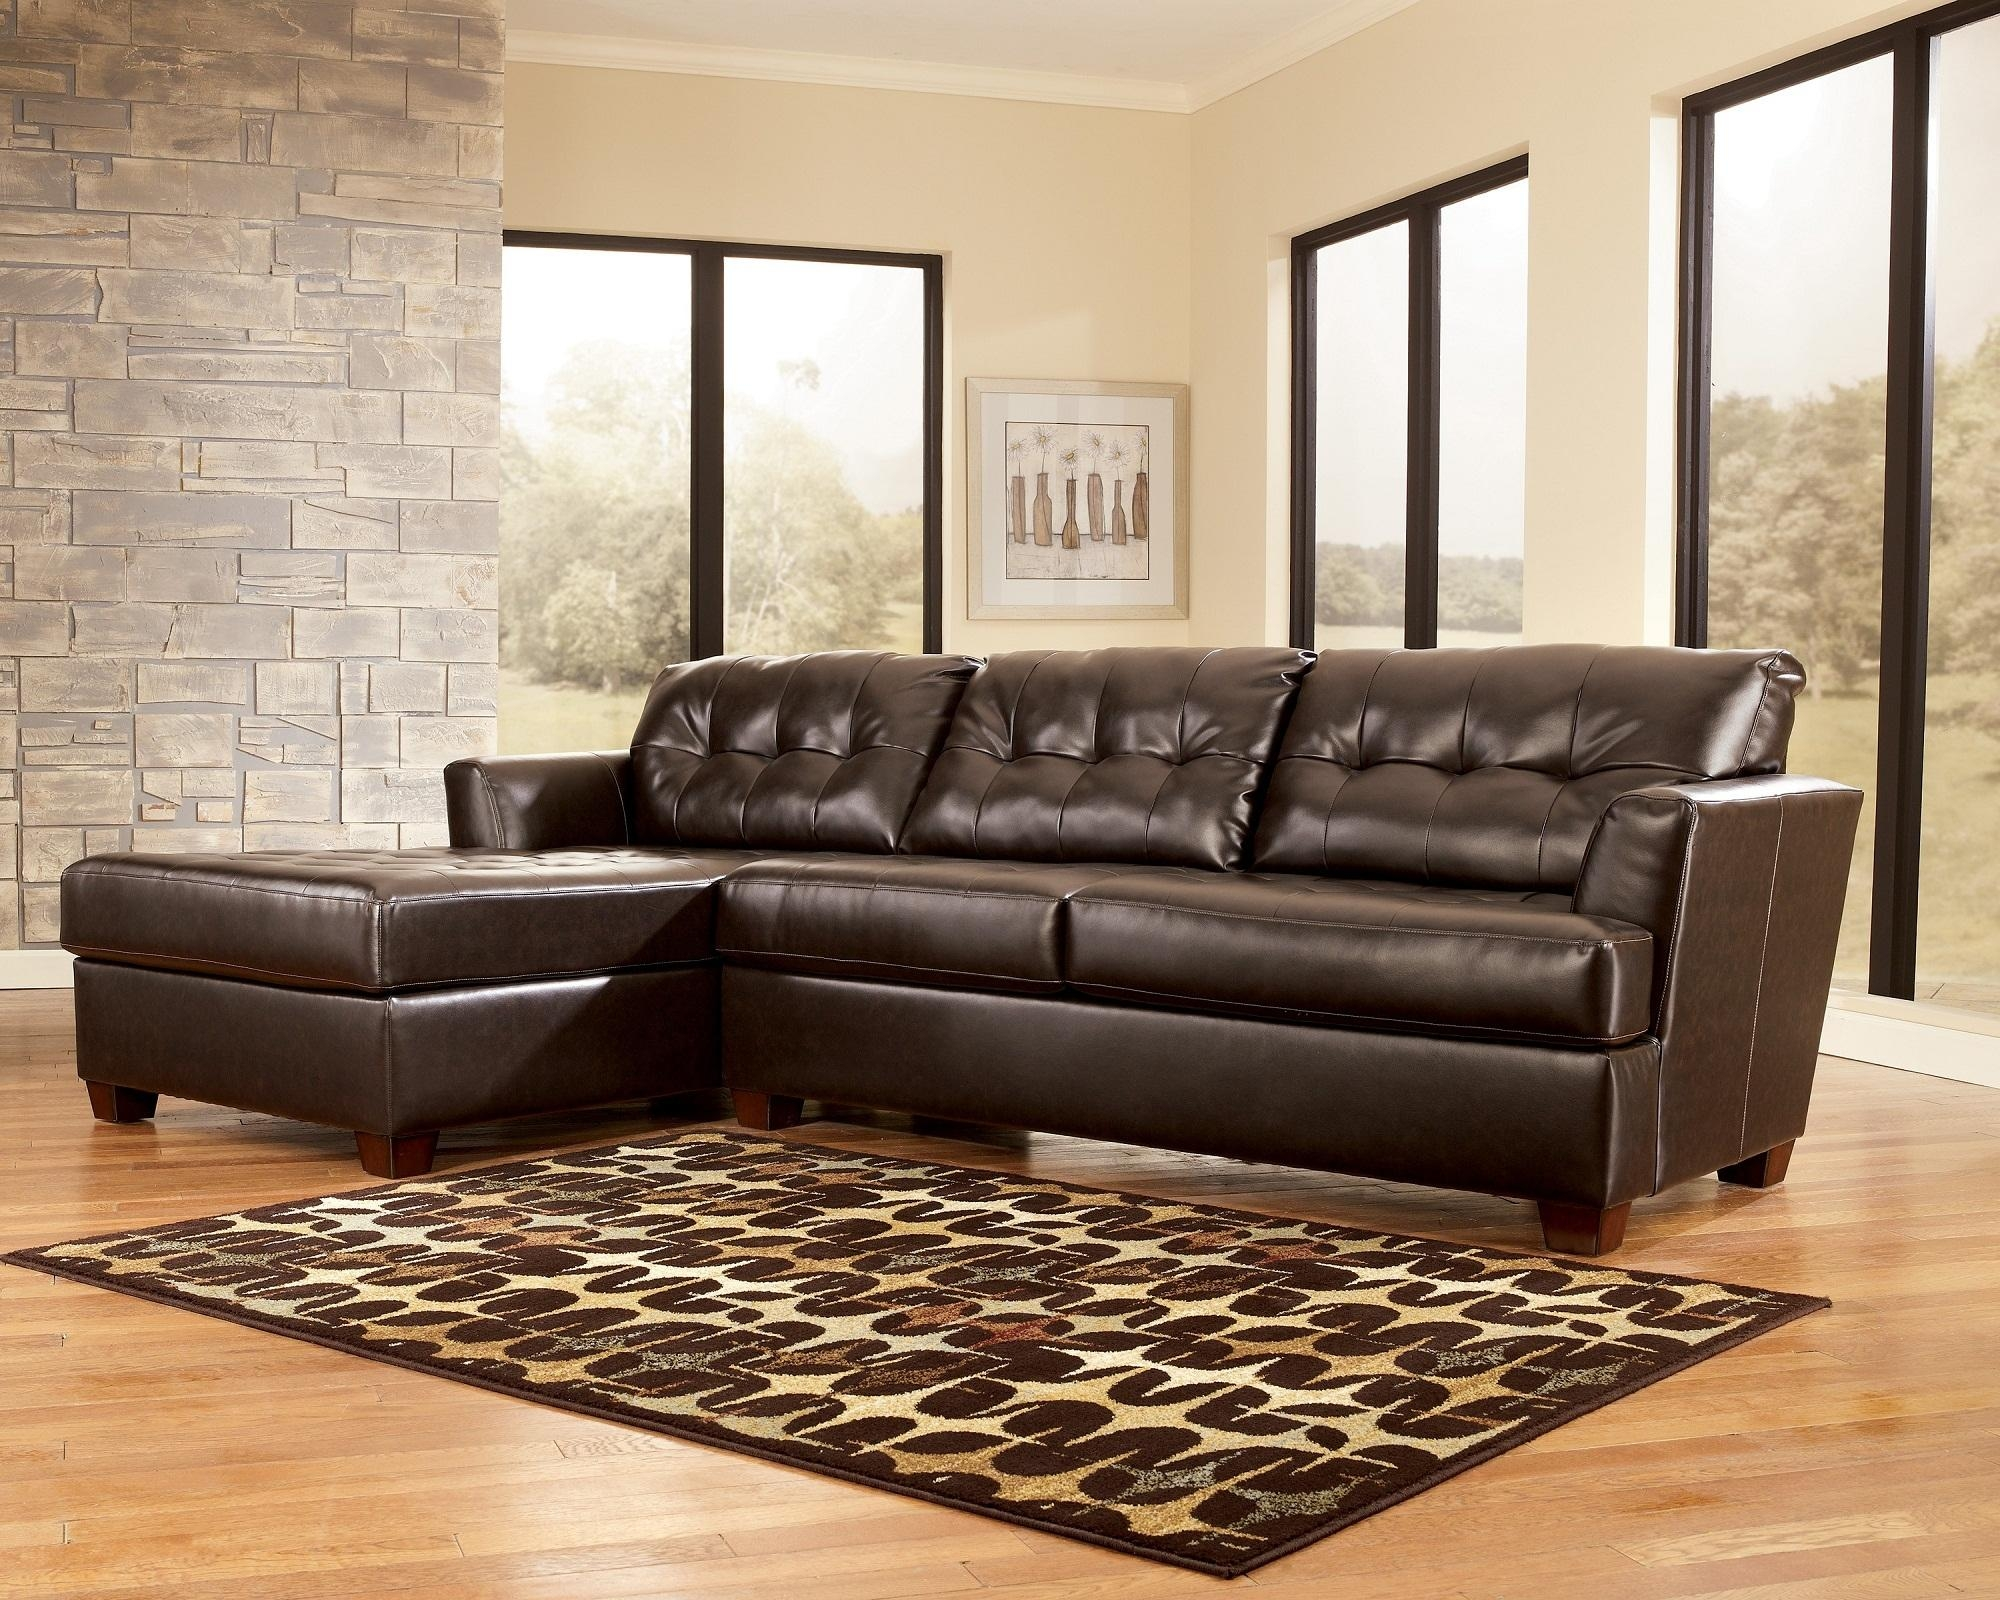 9 Best Contemporary Leather Sectional Sleeper Sofa With Chaise Regarding Black Leather Sectional Sleeper Sofas (View 17 of 21)